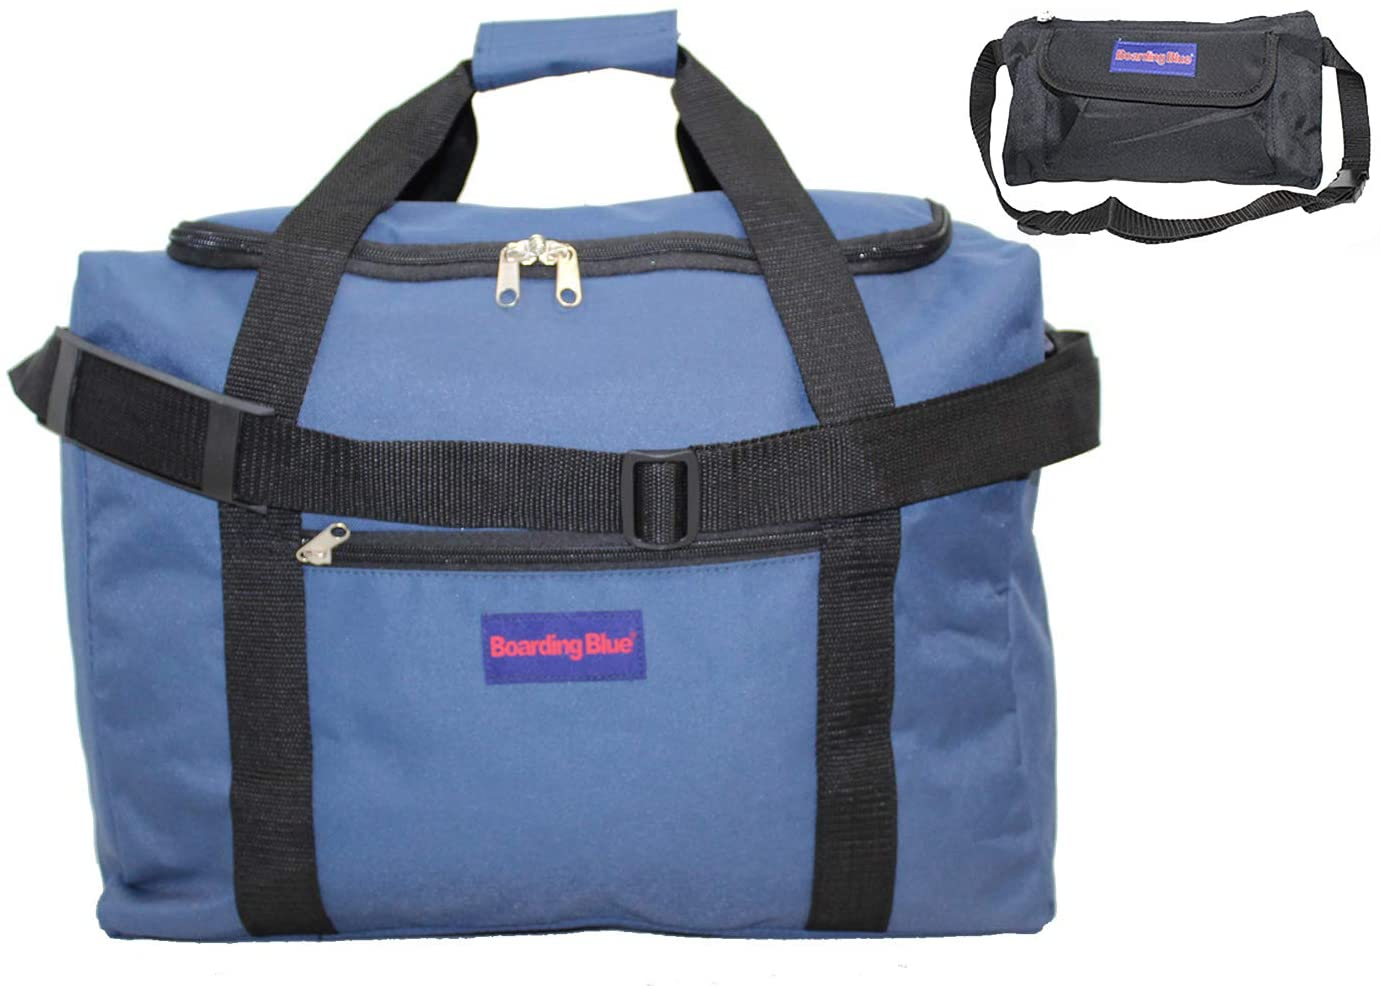 18 Personal Item Under seat free carry on for Airlines of Spirit Frontier AA Bonus (navy)